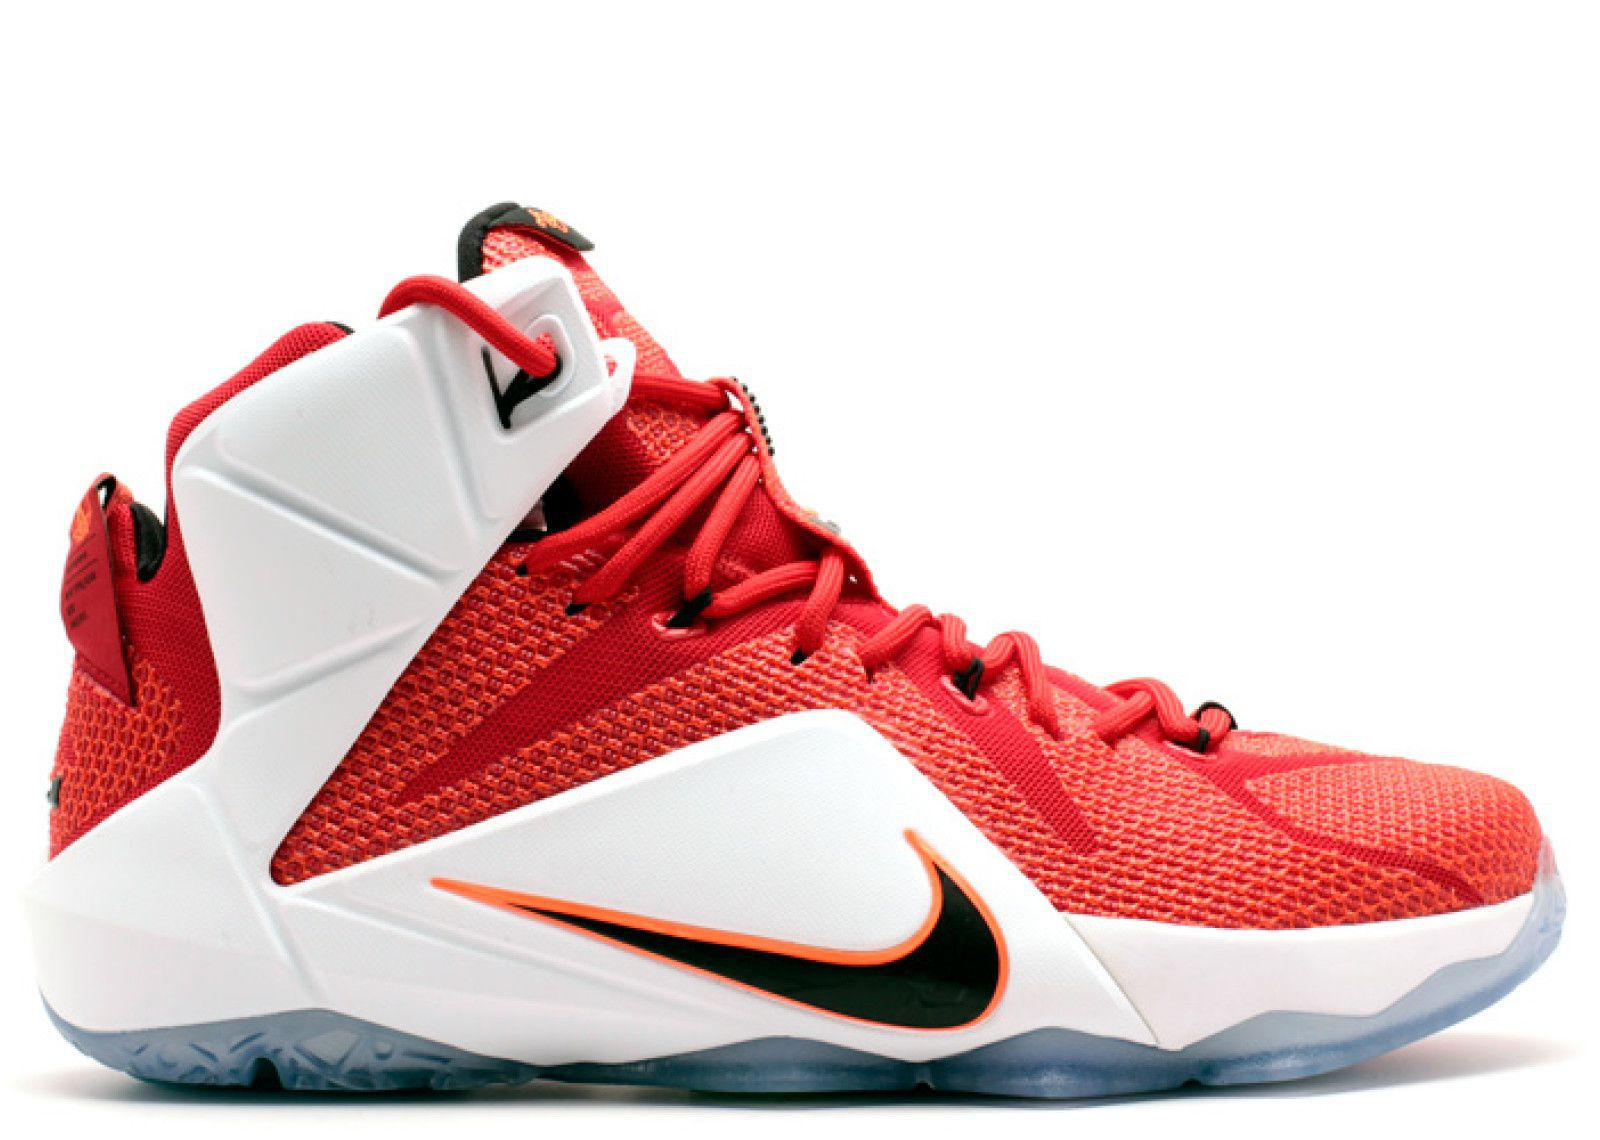 wholesale dealer 5c445 9e1a1 Nike Lebron X11 Heart Of A Lion Red Basketball Shoes